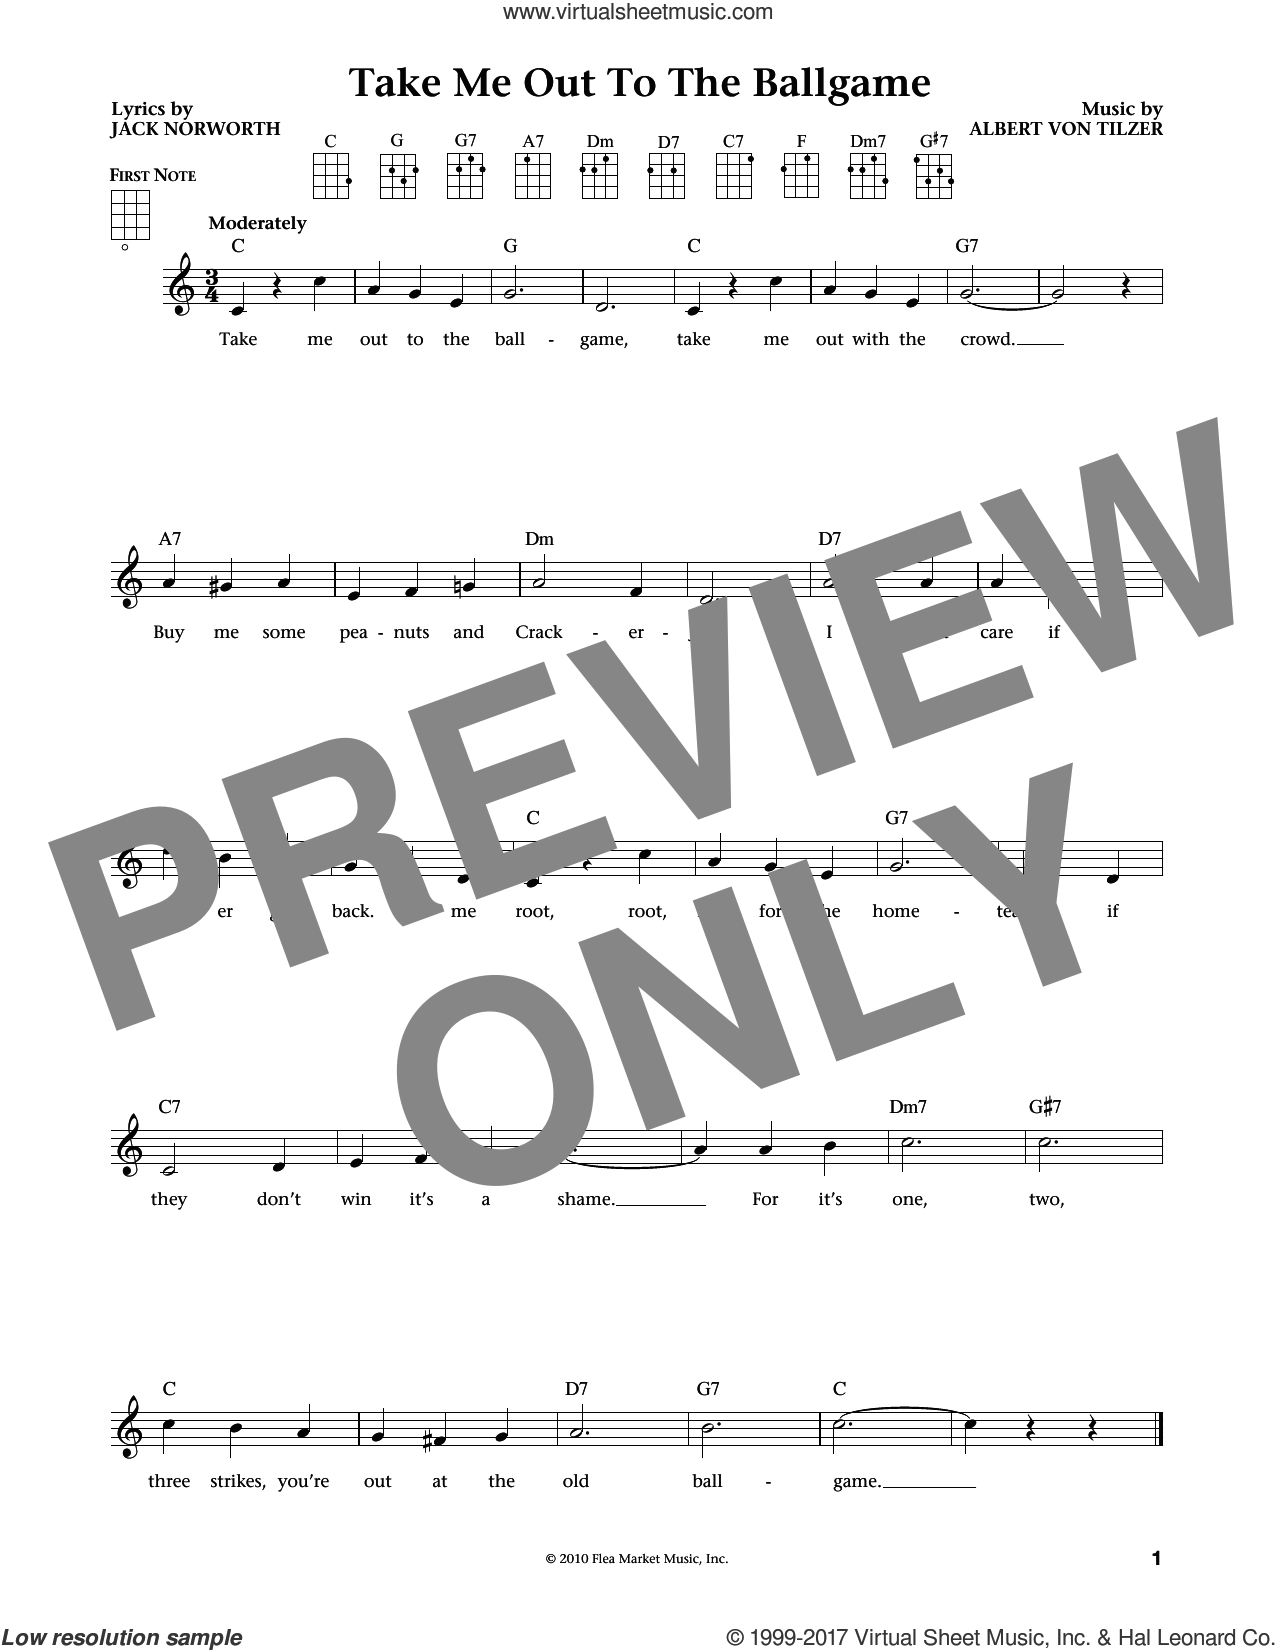 Take Me Out To The Ball Game (from The Daily Ukulele) (arr. Liz and Jim Beloff) sheet music for ukulele by Albert von Tilzer, Jim Beloff, Liz Beloff and Jack Norworth, intermediate skill level